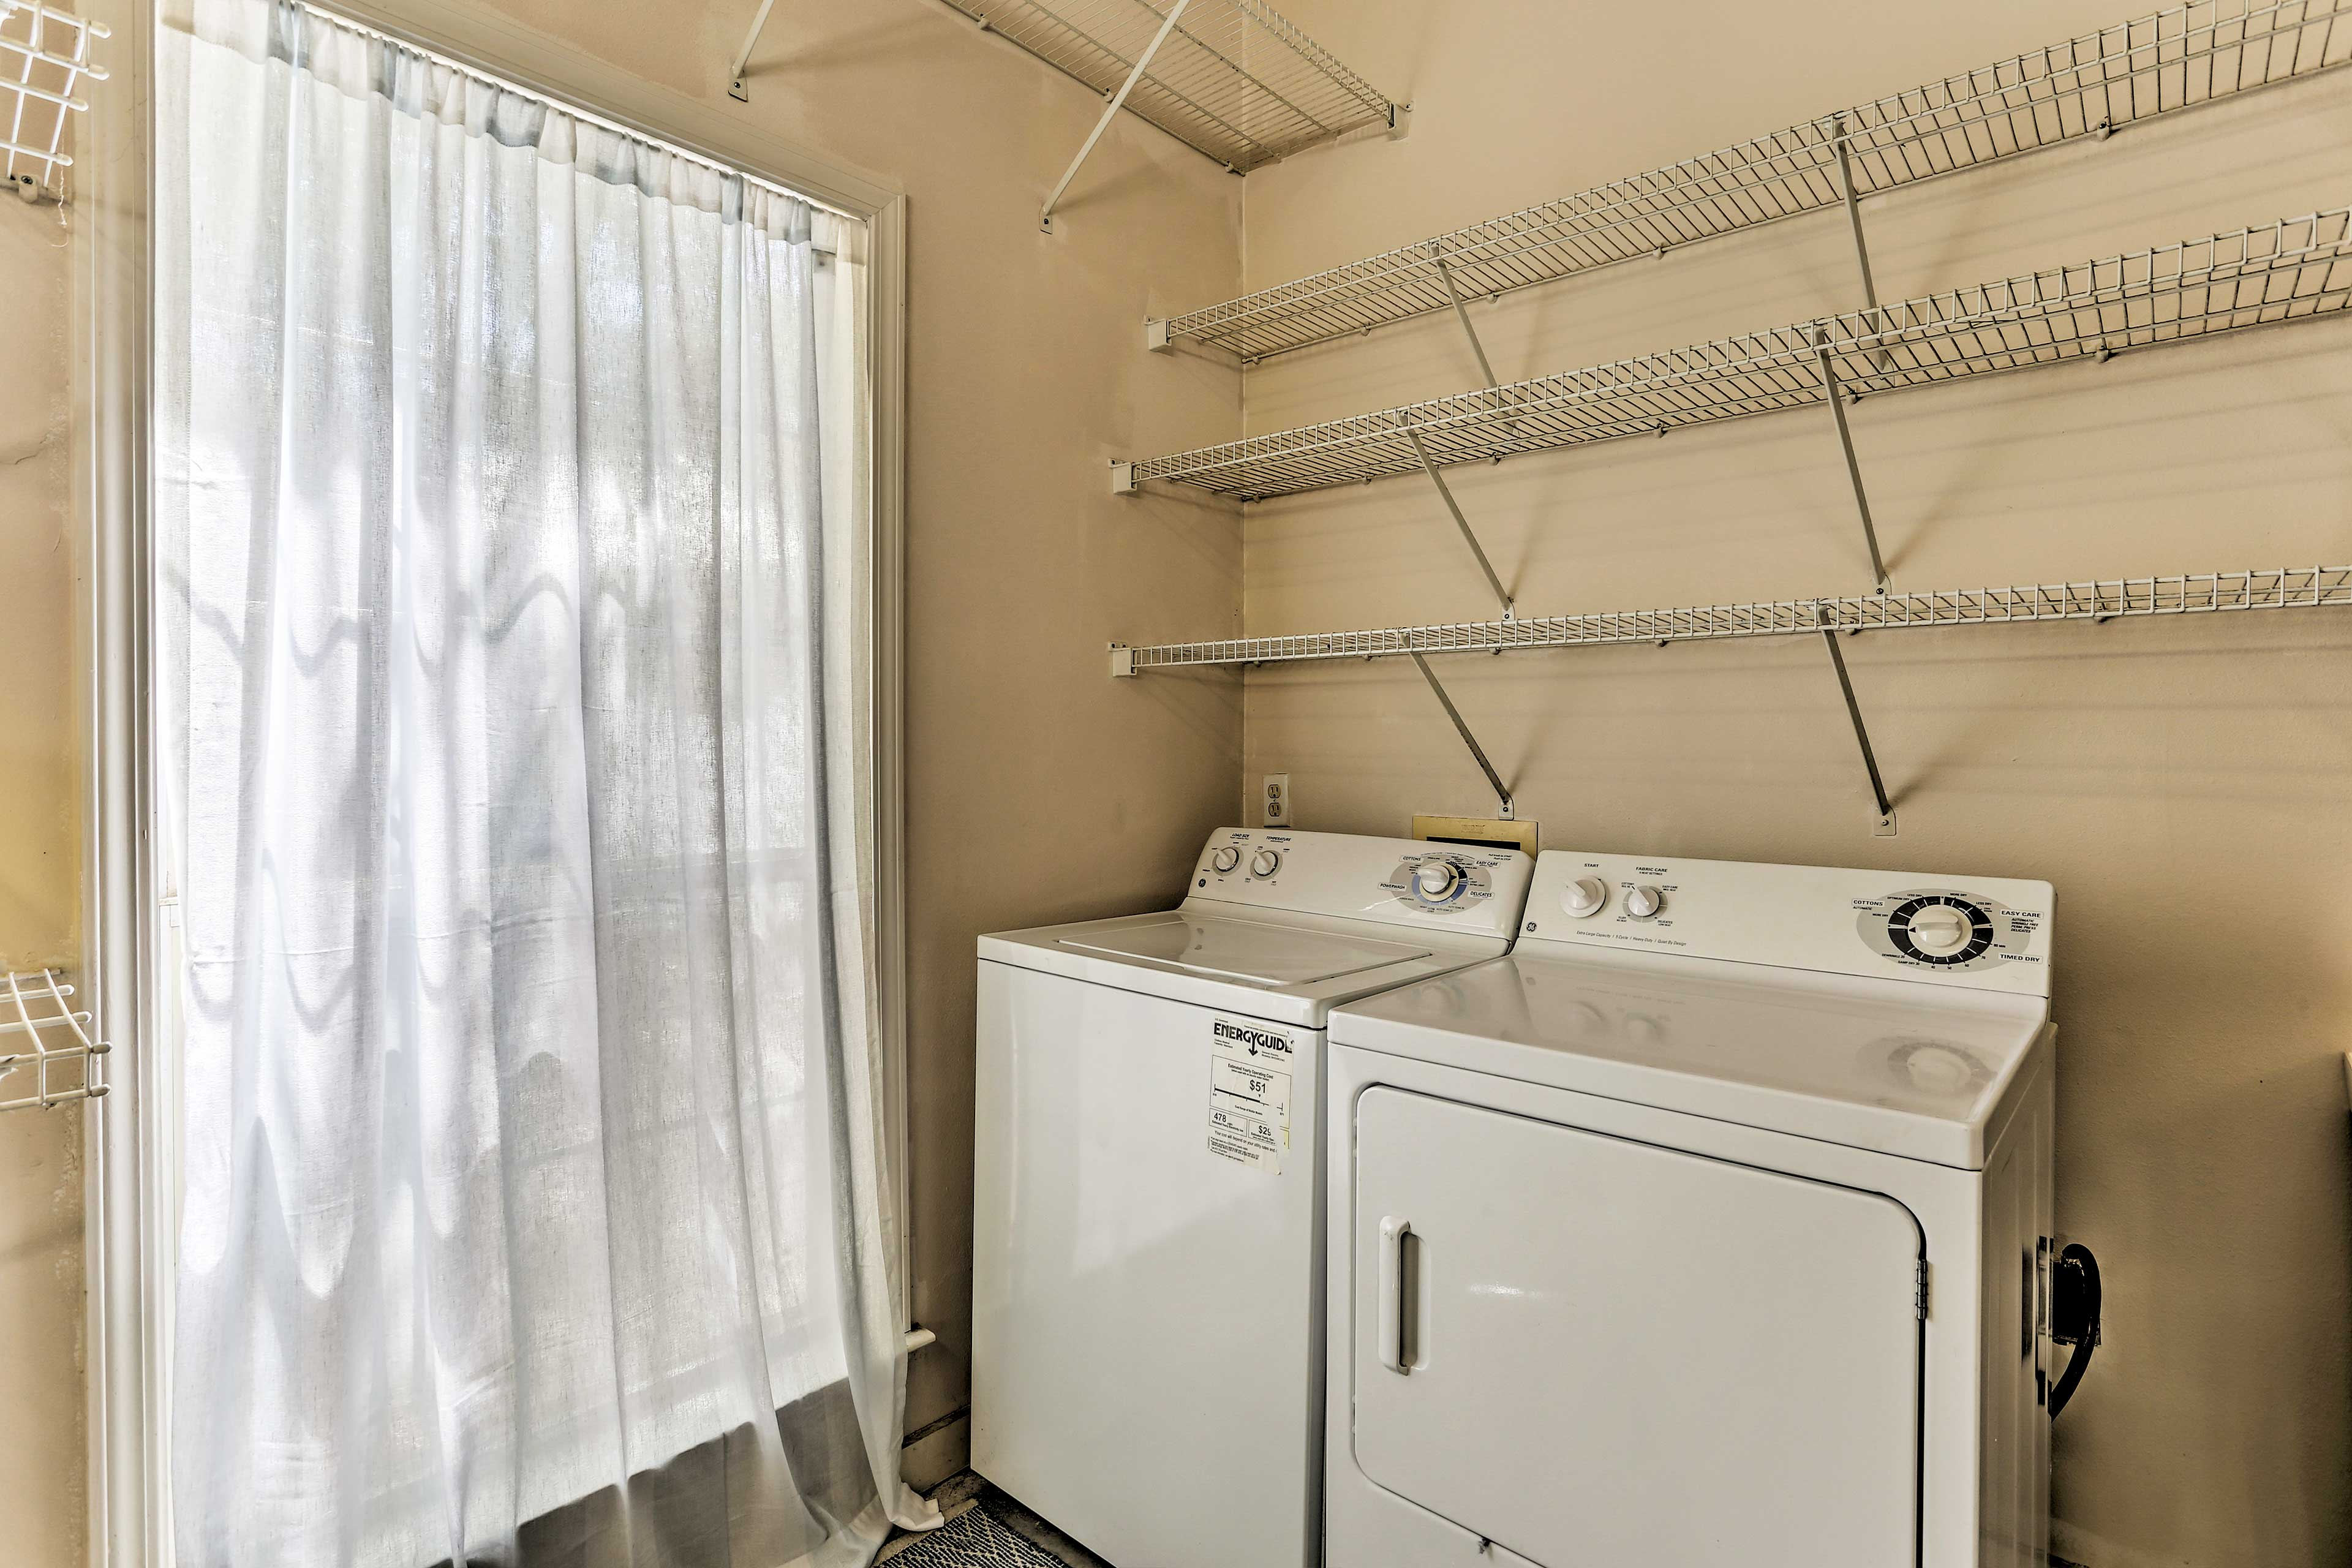 Enjoy access to a washer & dryer inside the home.